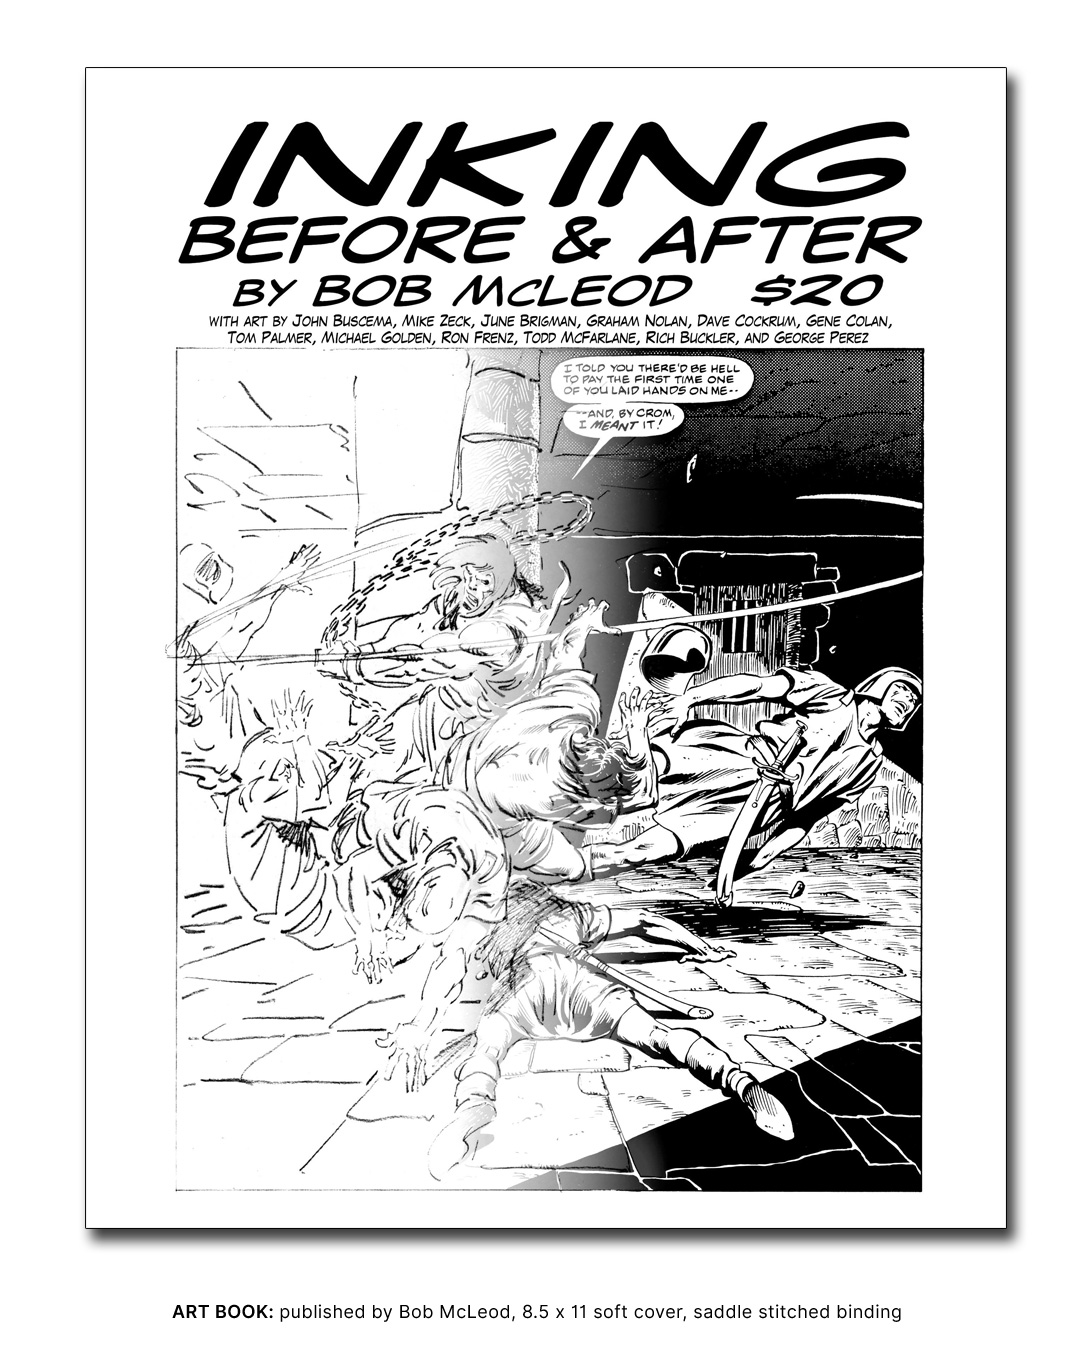 Art Book - INKING: BEFORE & AFTER